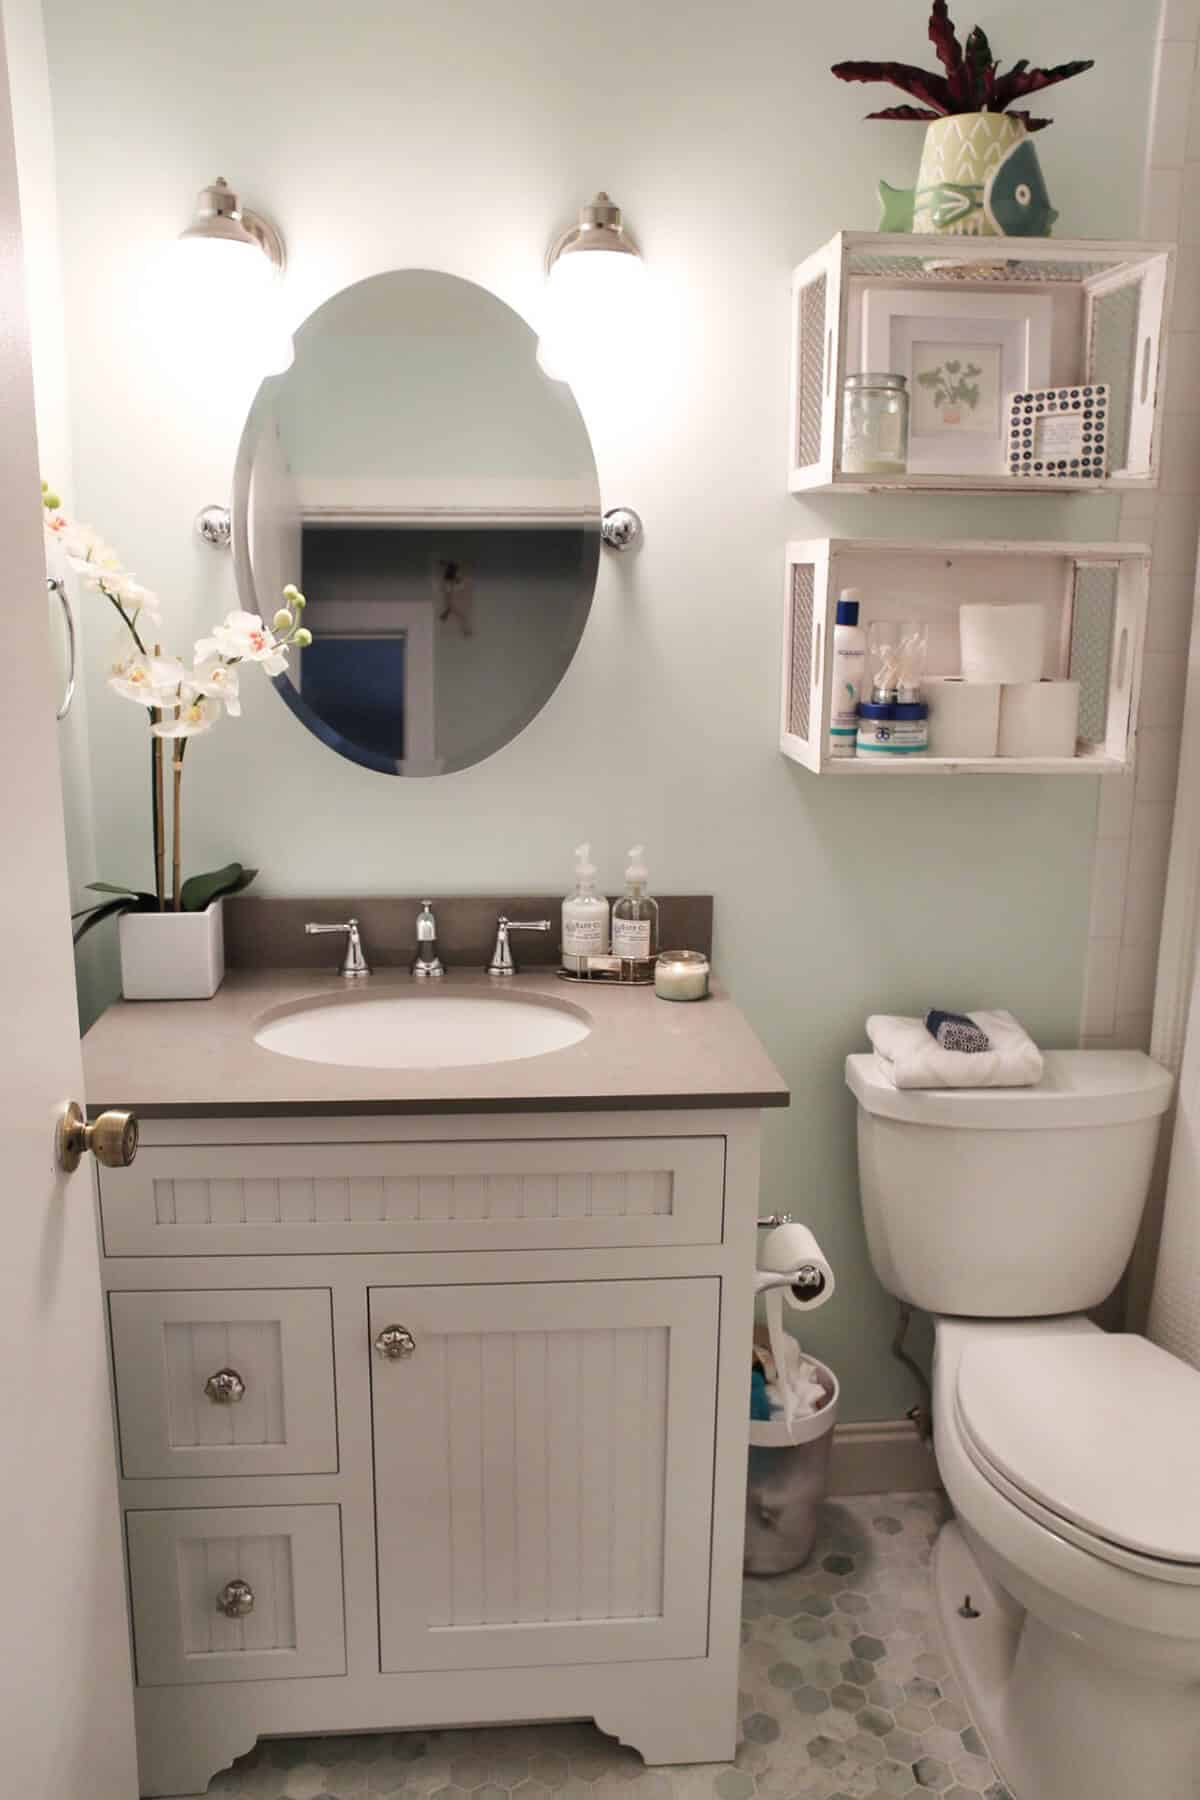 What Colors Work Best In Small Bathroom